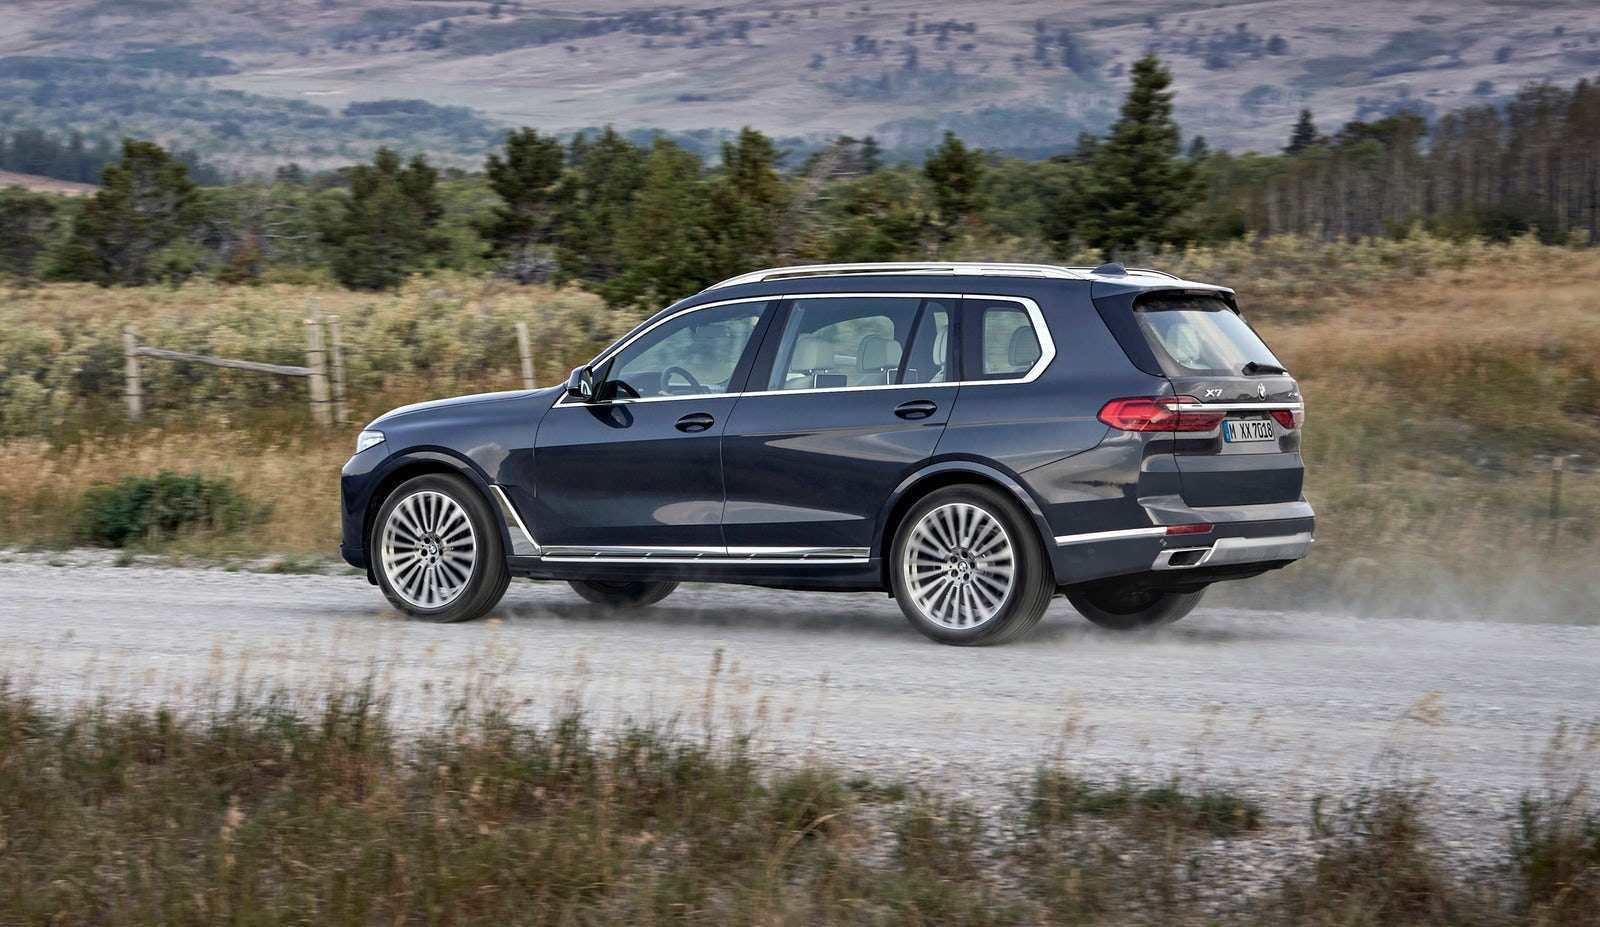 60 A 2020 BMW X7 Wallpaper